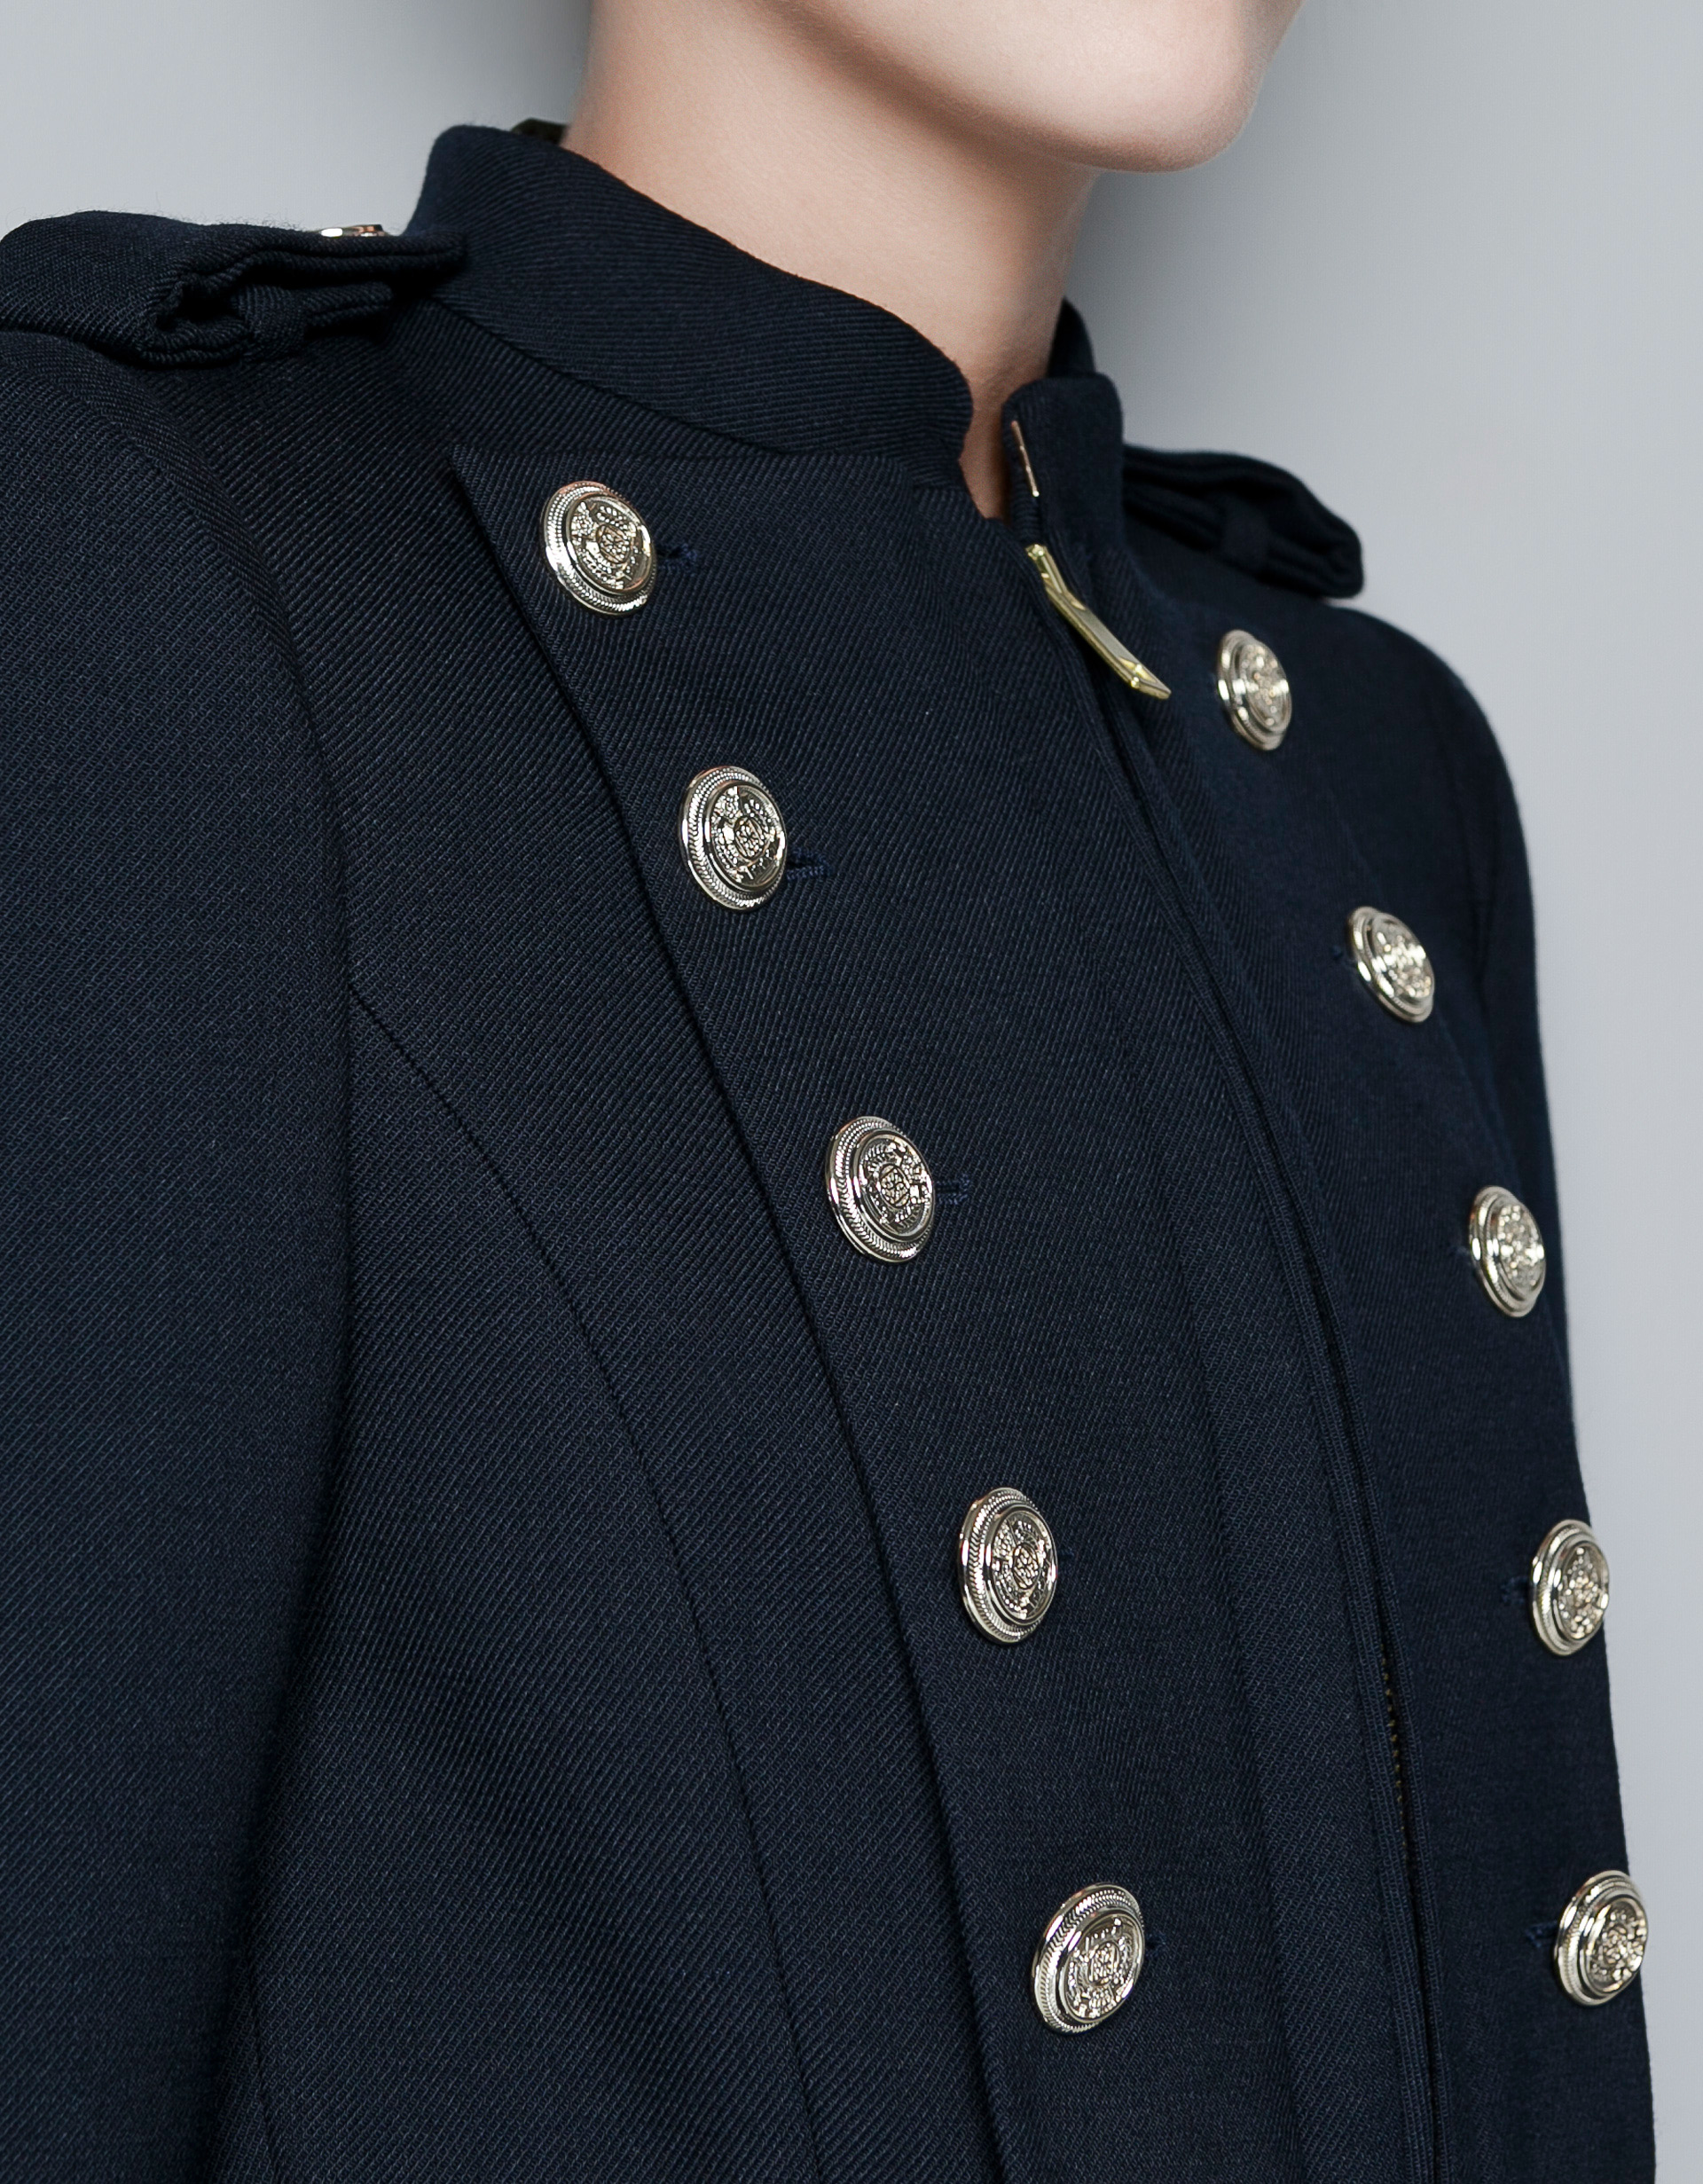 Military Style Coat Buttons